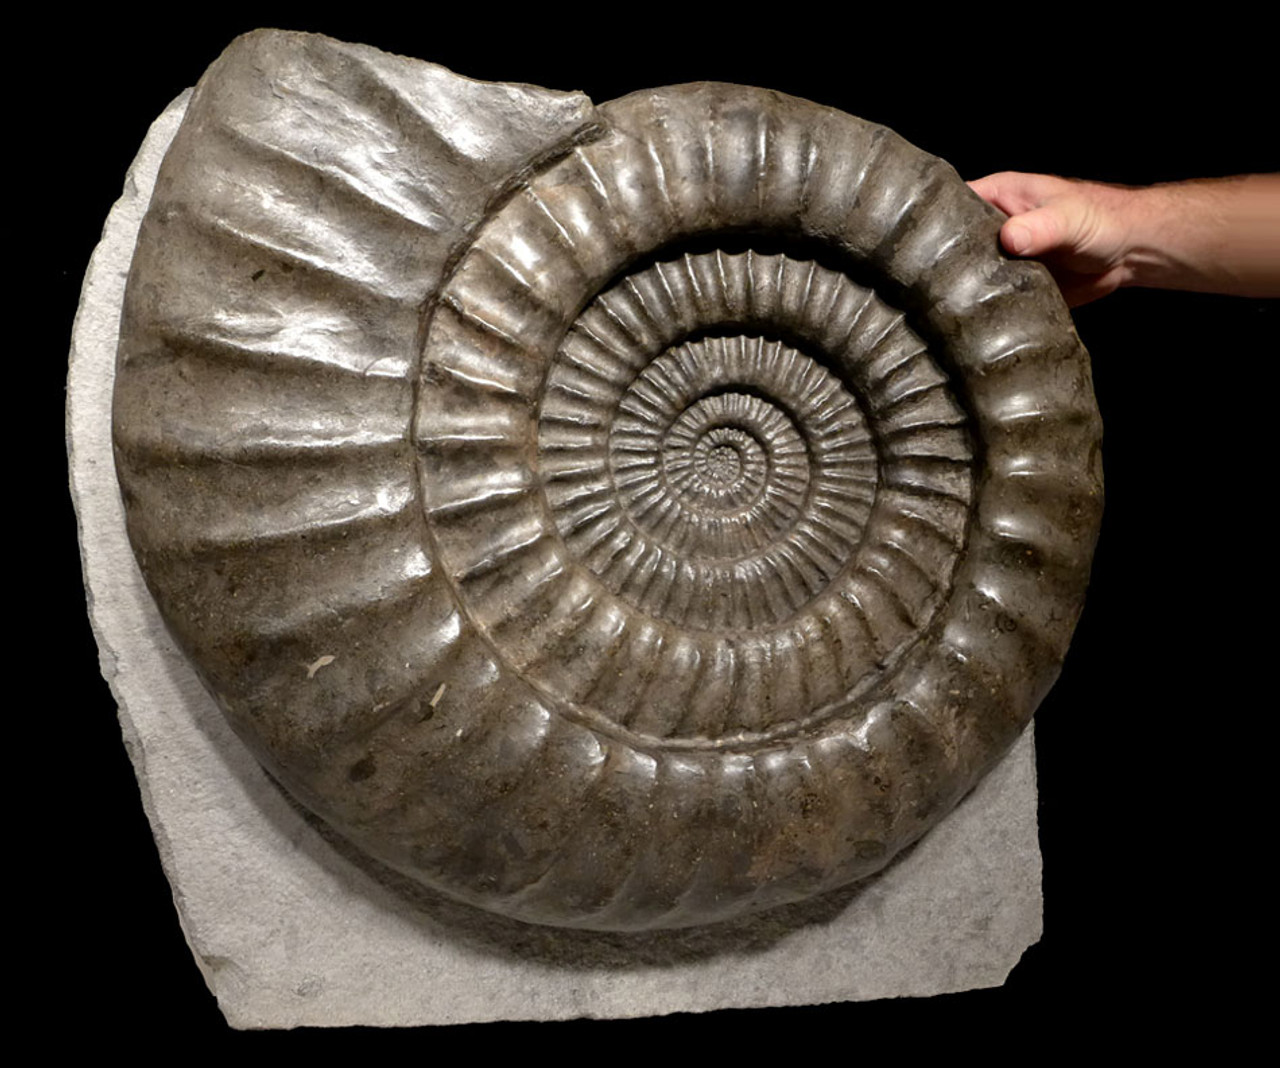 AMX332 - GIANT 23 INCH BLACK ARIETITES AMMONITE FROM THE JURASSIC PERIOD OF FRANCE